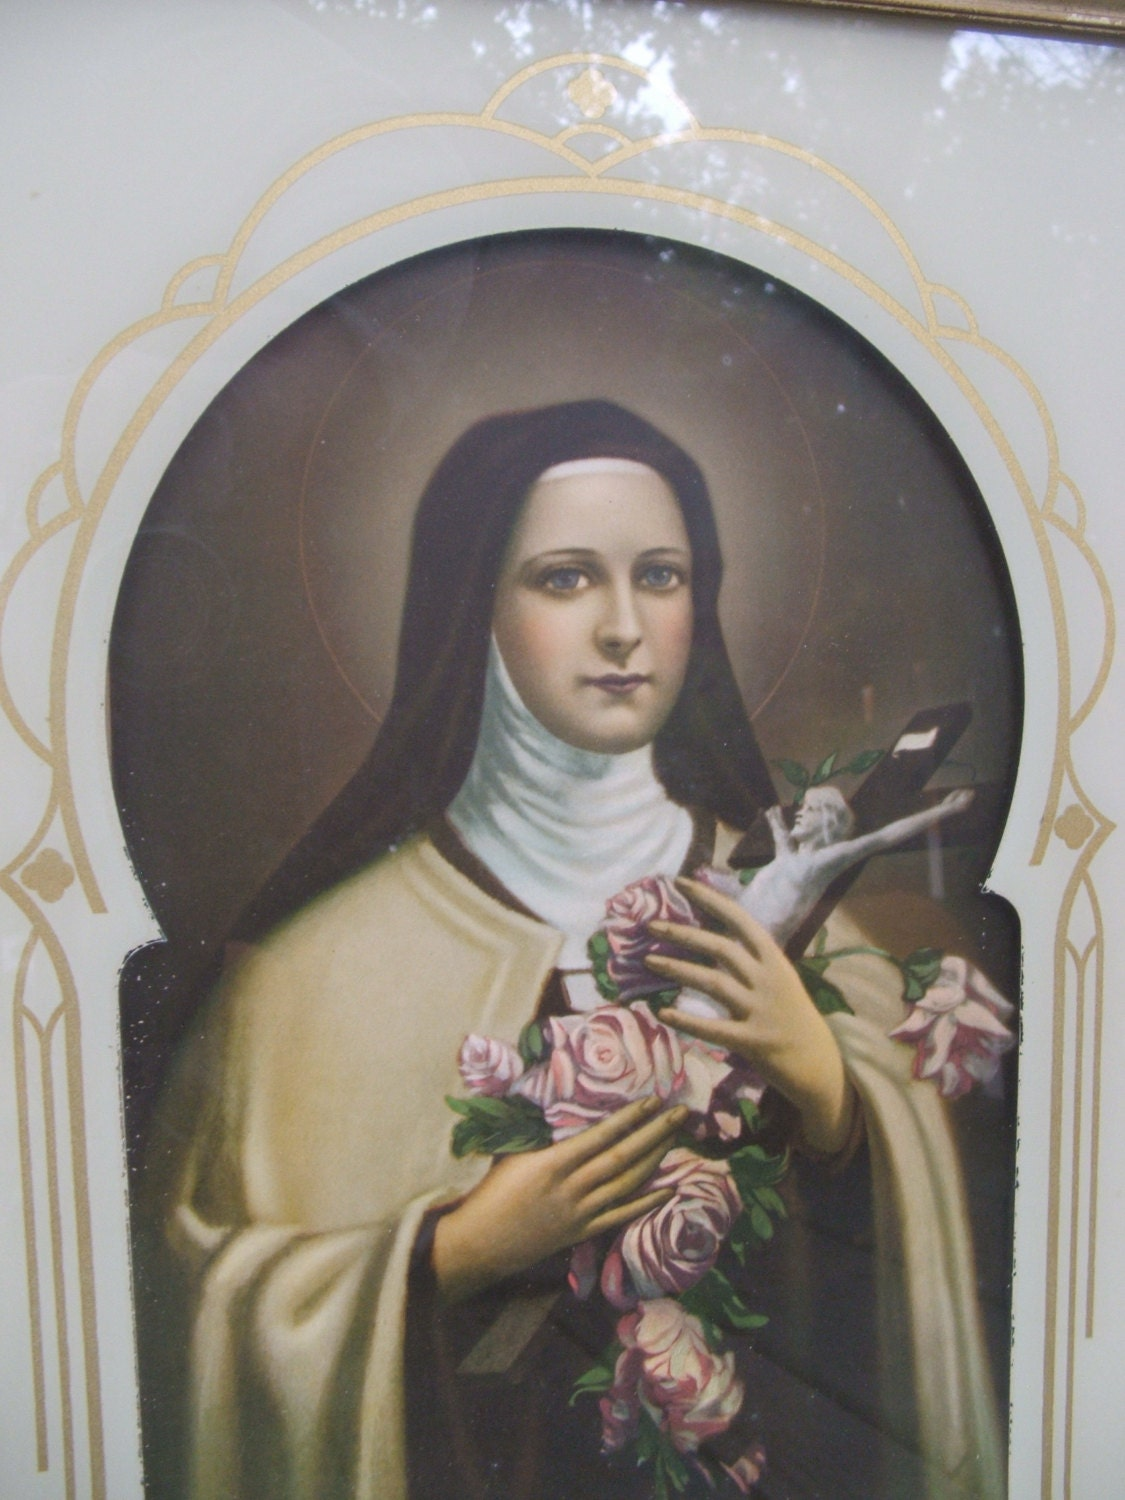 Antique Framed Saint Theresa St Therese of Lisieux The